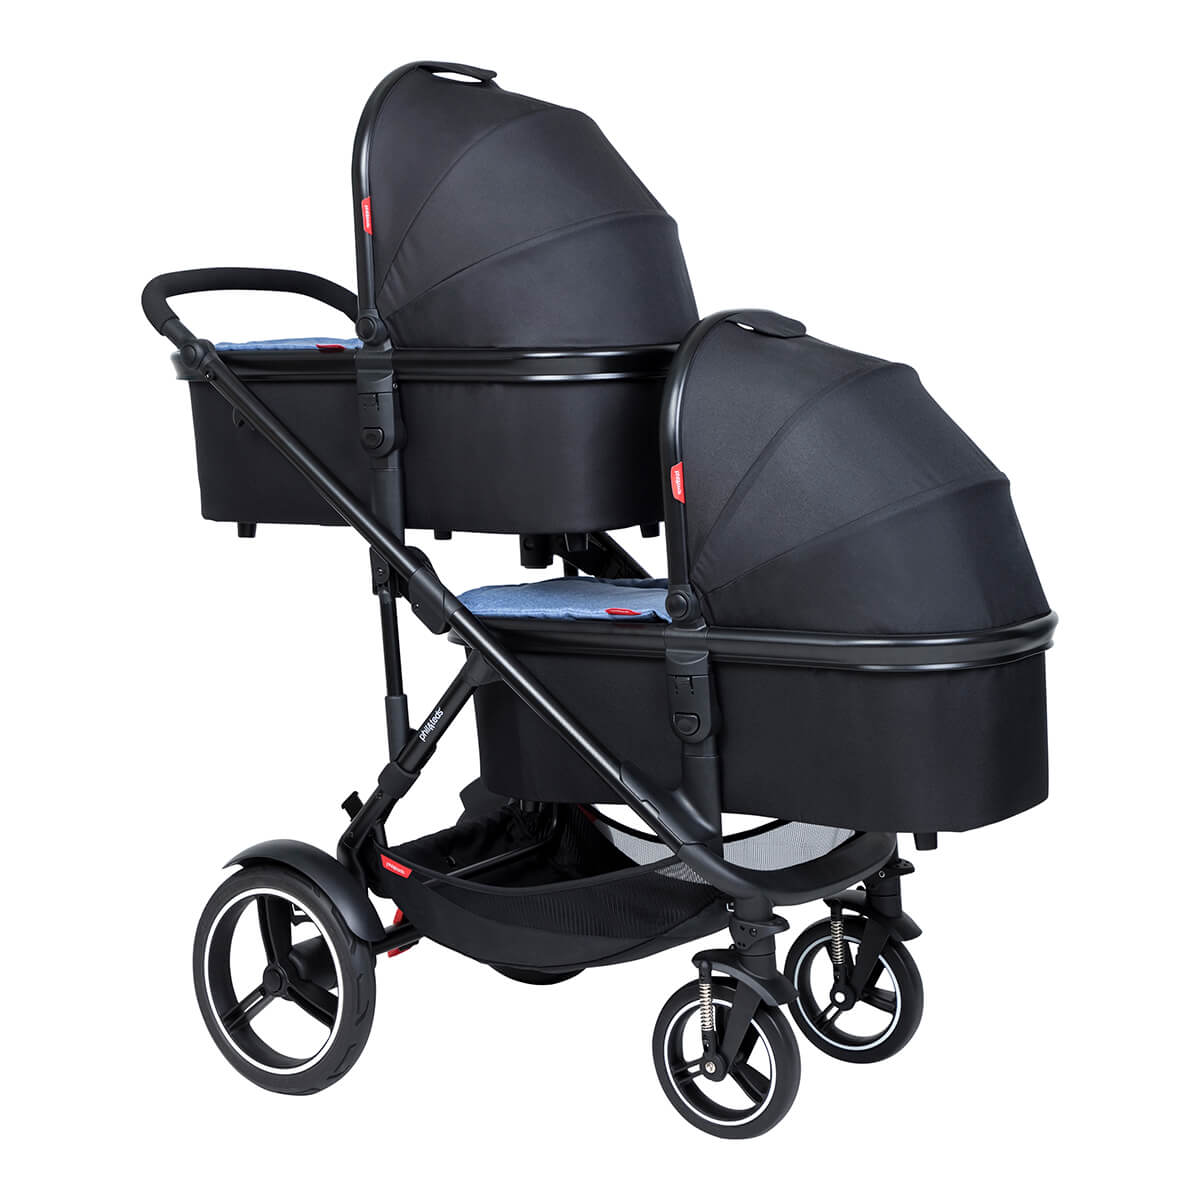 https://cdn.accentuate.io/4509912236109/19466204610754/philteds-voyager-inline-buggy-with-double-snug-carrycots-v1626485538435.jpg?1200x1200